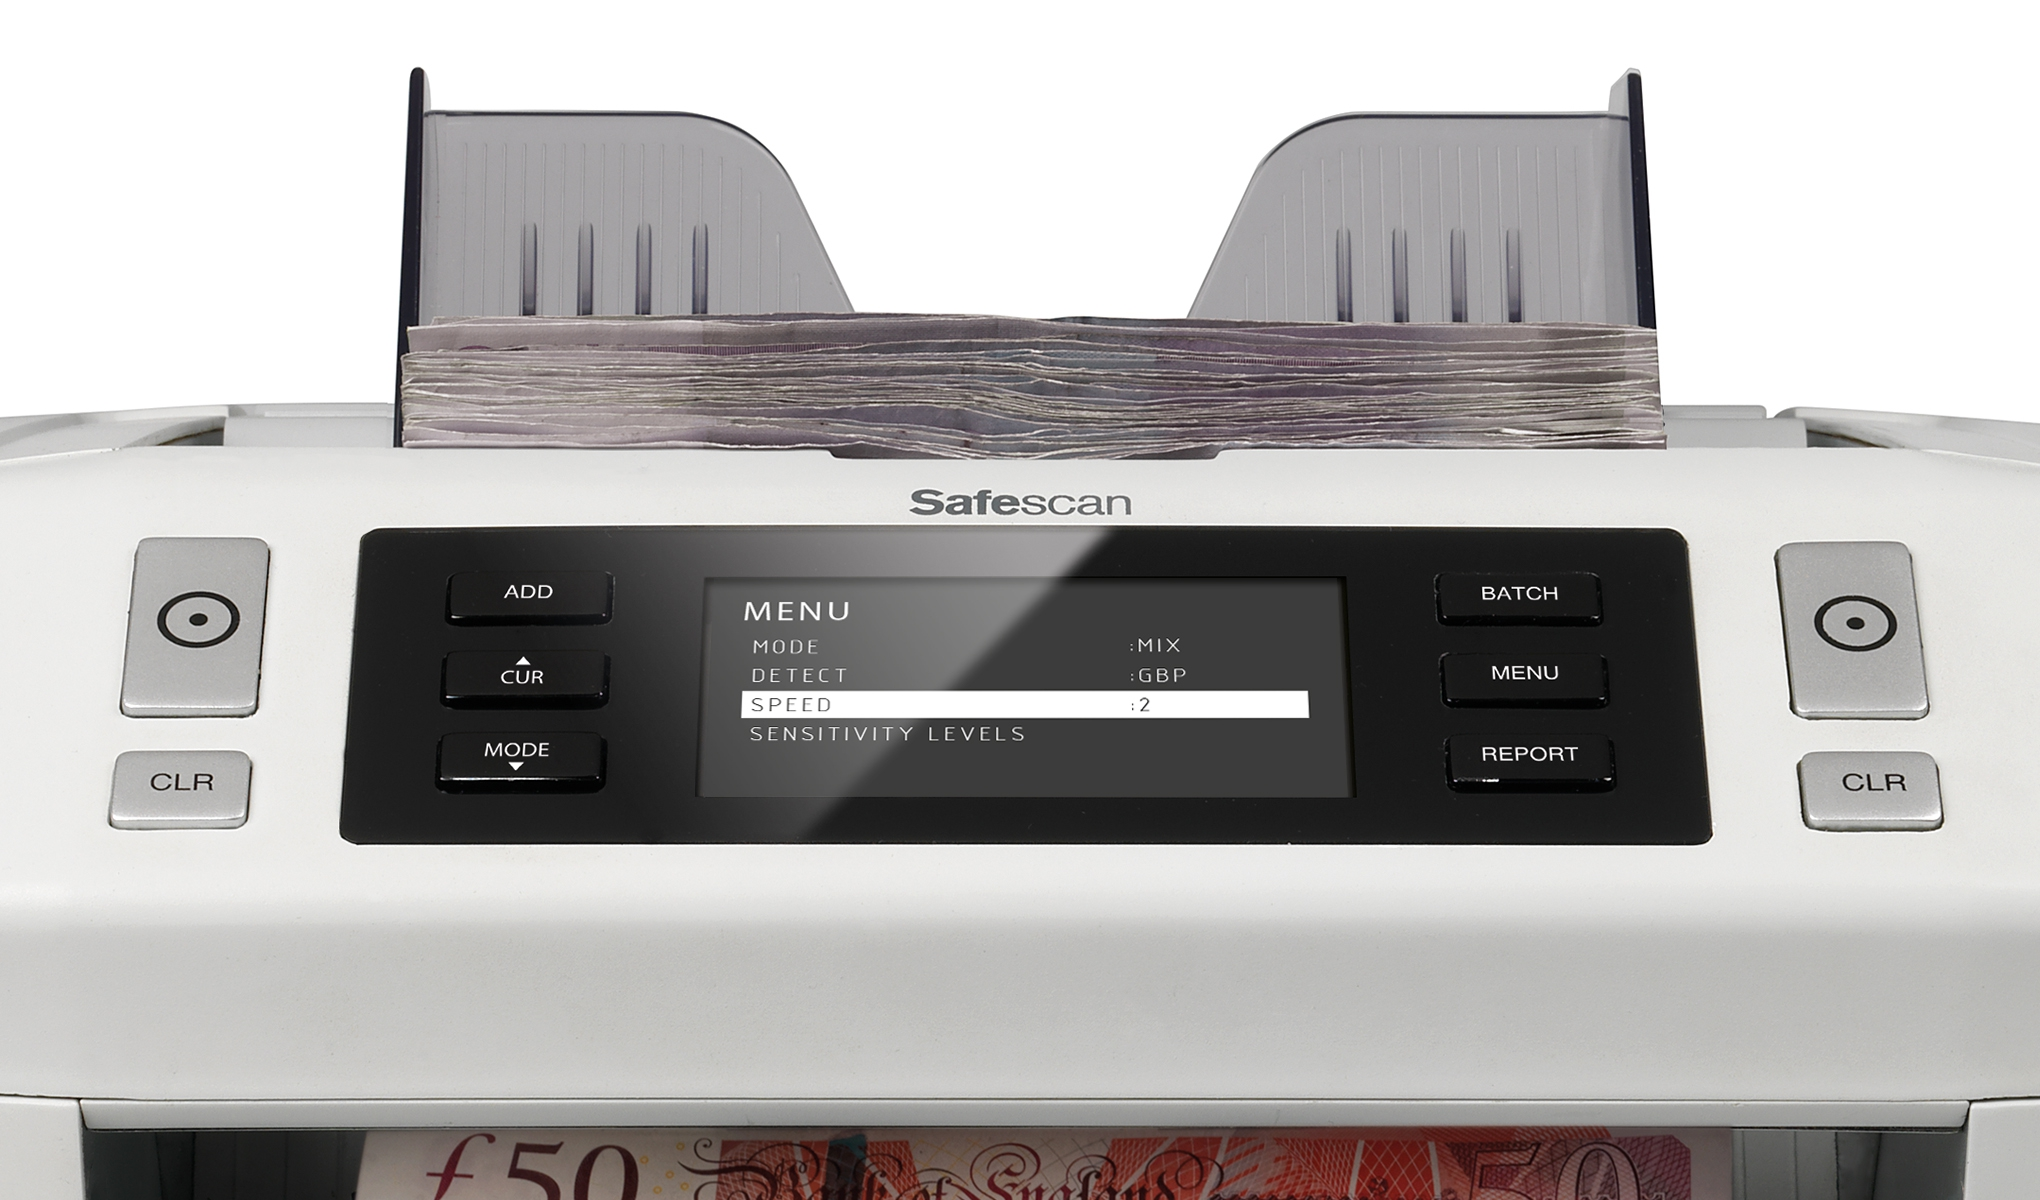 safescan-2685-banknote-counter